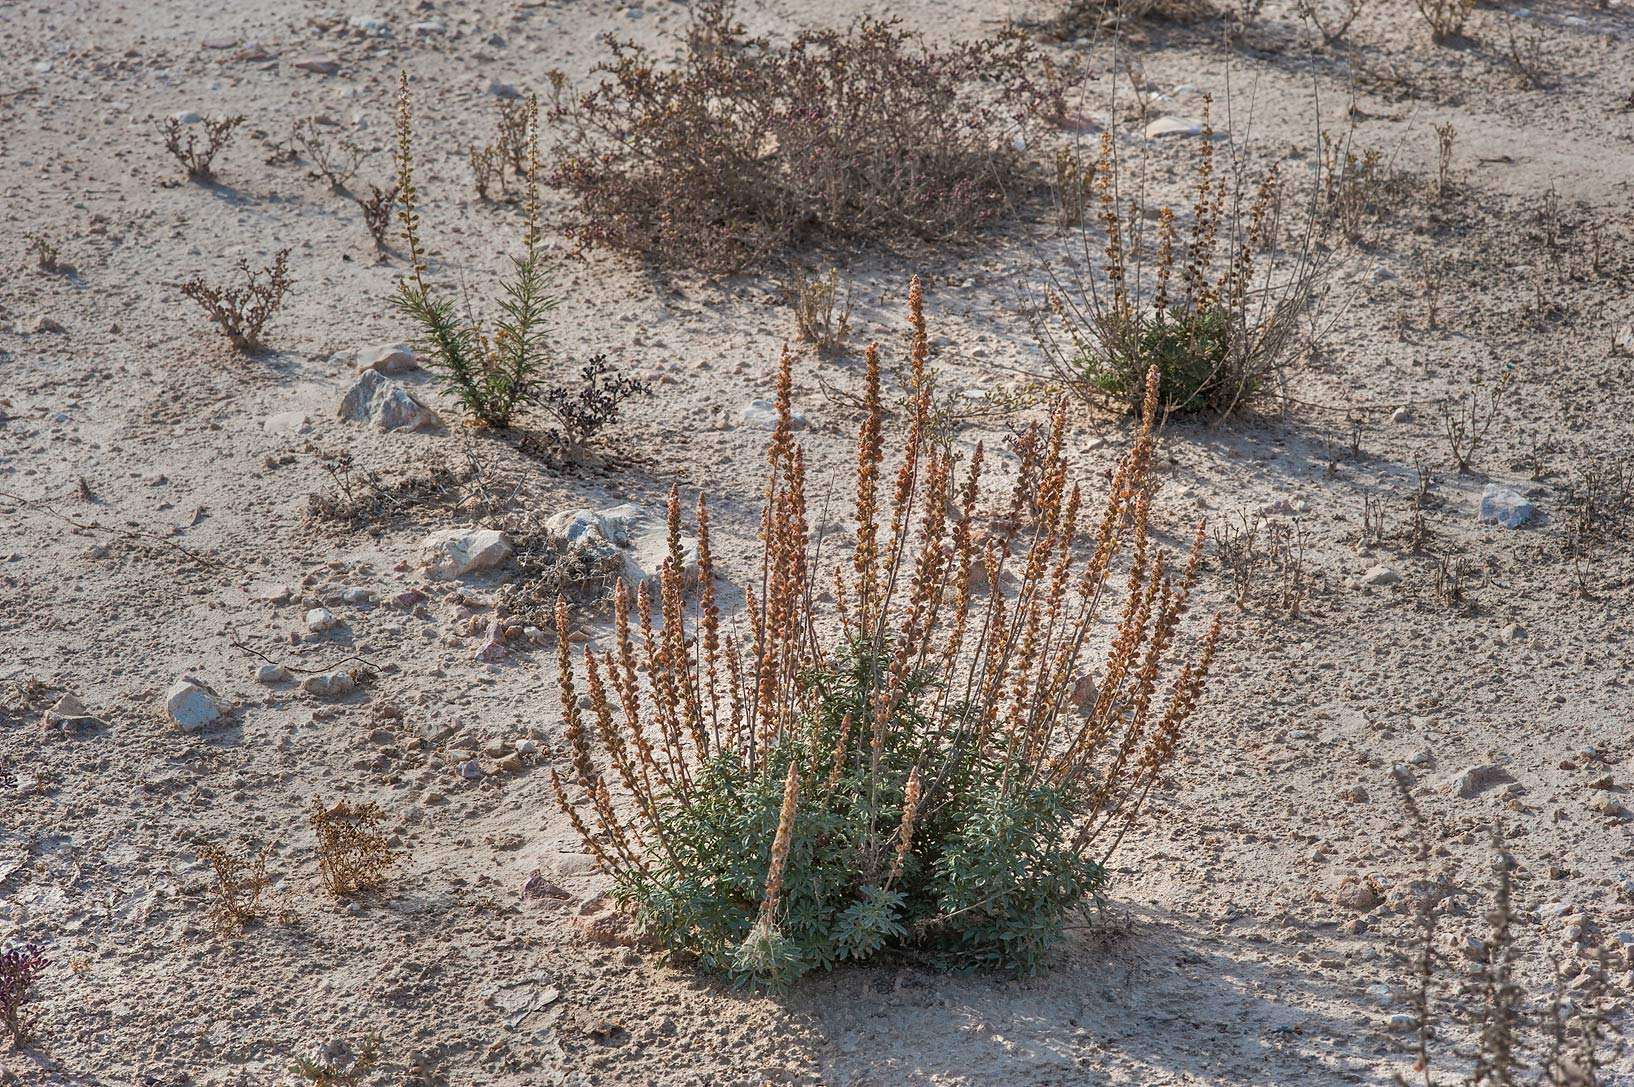 Reseda muricata (local name showla) near Al Khor Hospital. Qatar